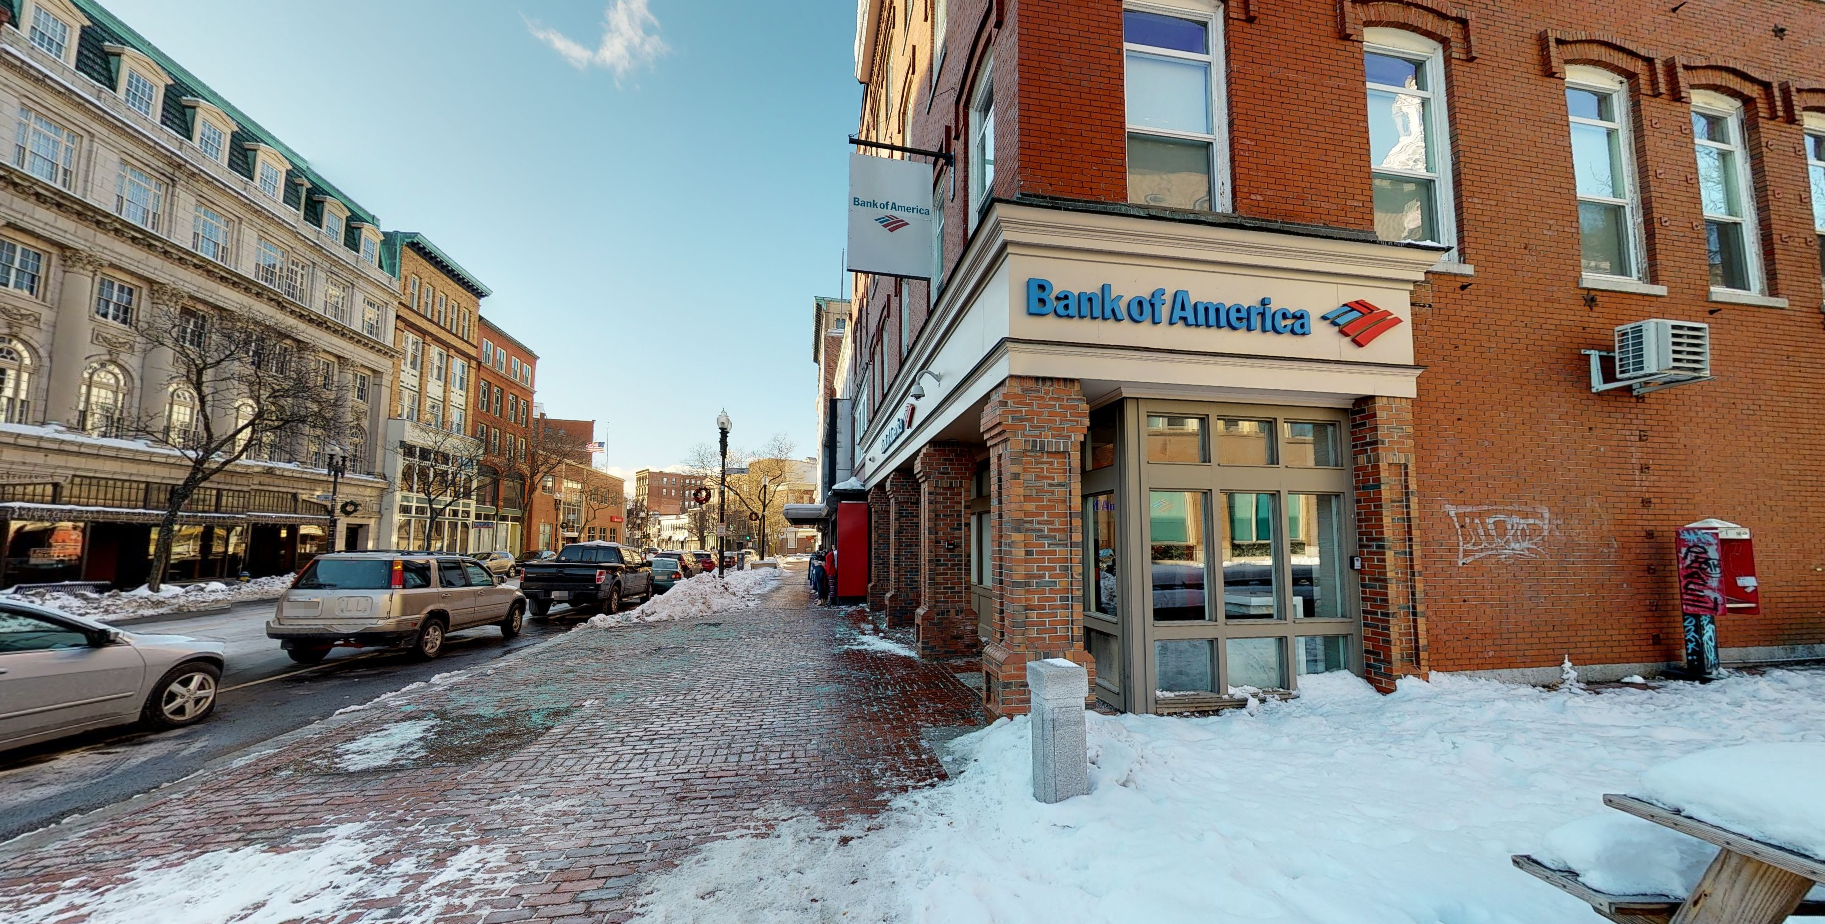 Bank of America financial center with walk-up ATM | 257 Essex St, Lawrence, MA 01840